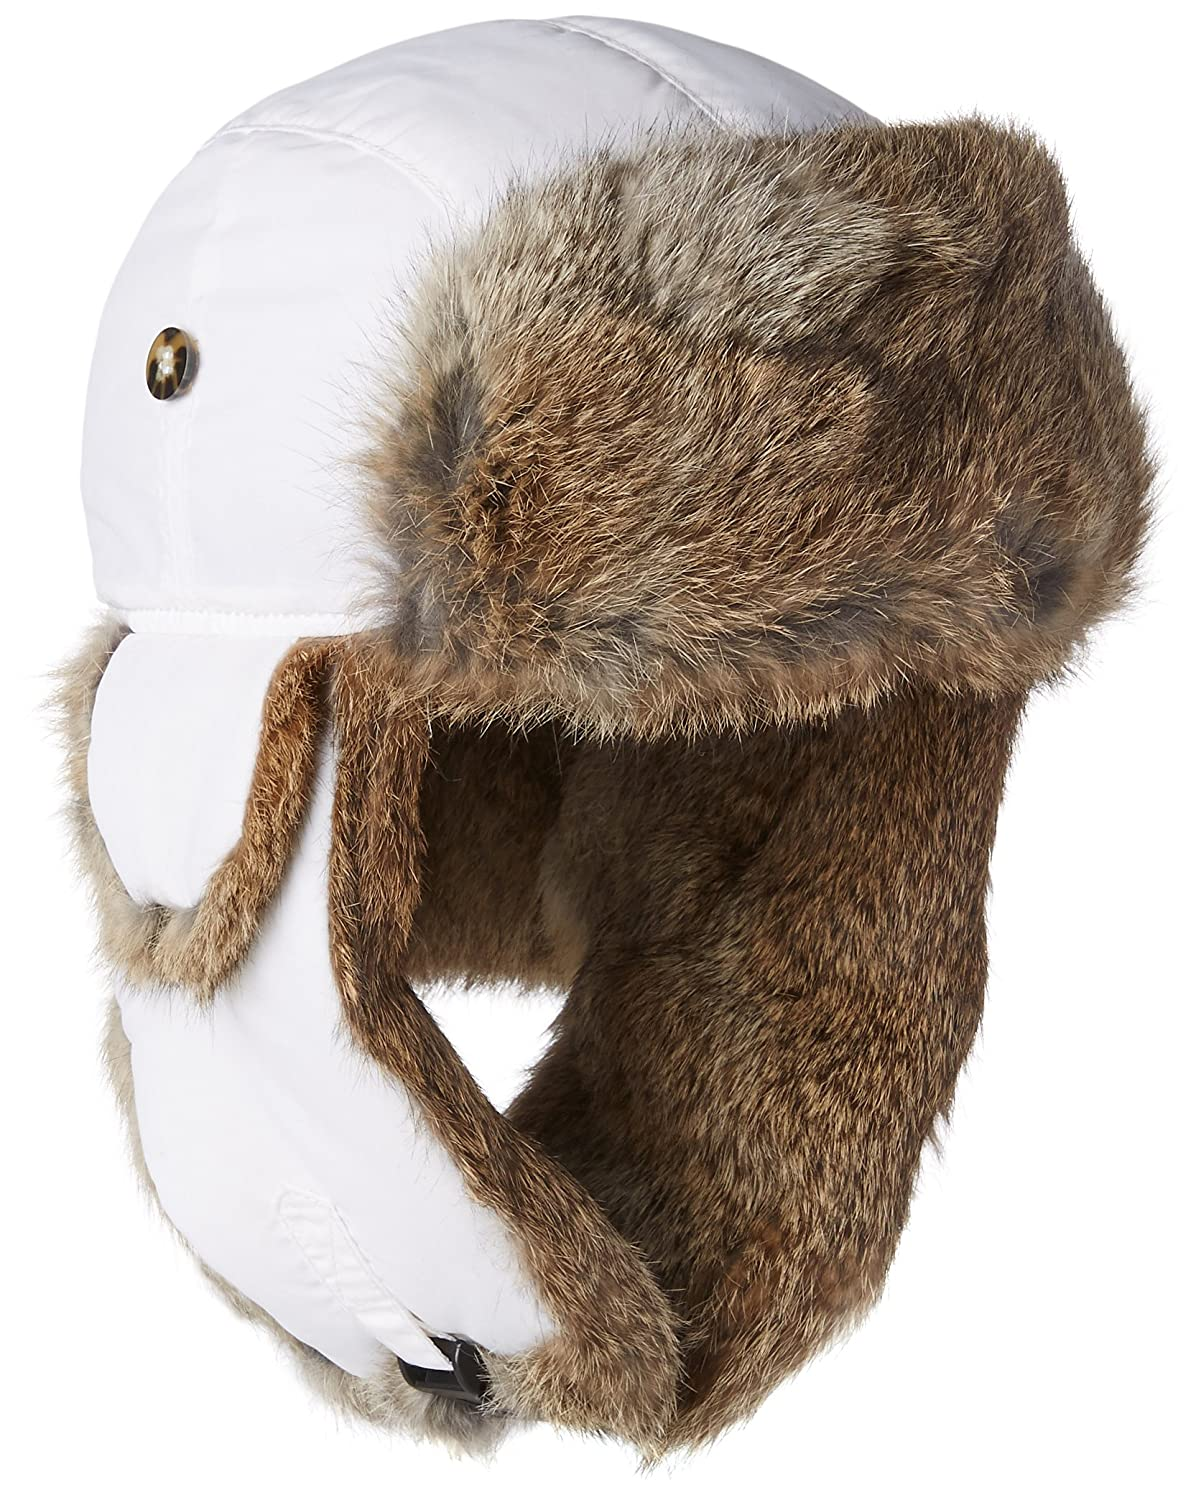 7af80b23f61 Amazon.com  Mad Bomber Chocolate Brown Supplex Pilot Aviator Hat Real  Rabbit Fur Trapper Hunting Cap  Sports   Outdoors